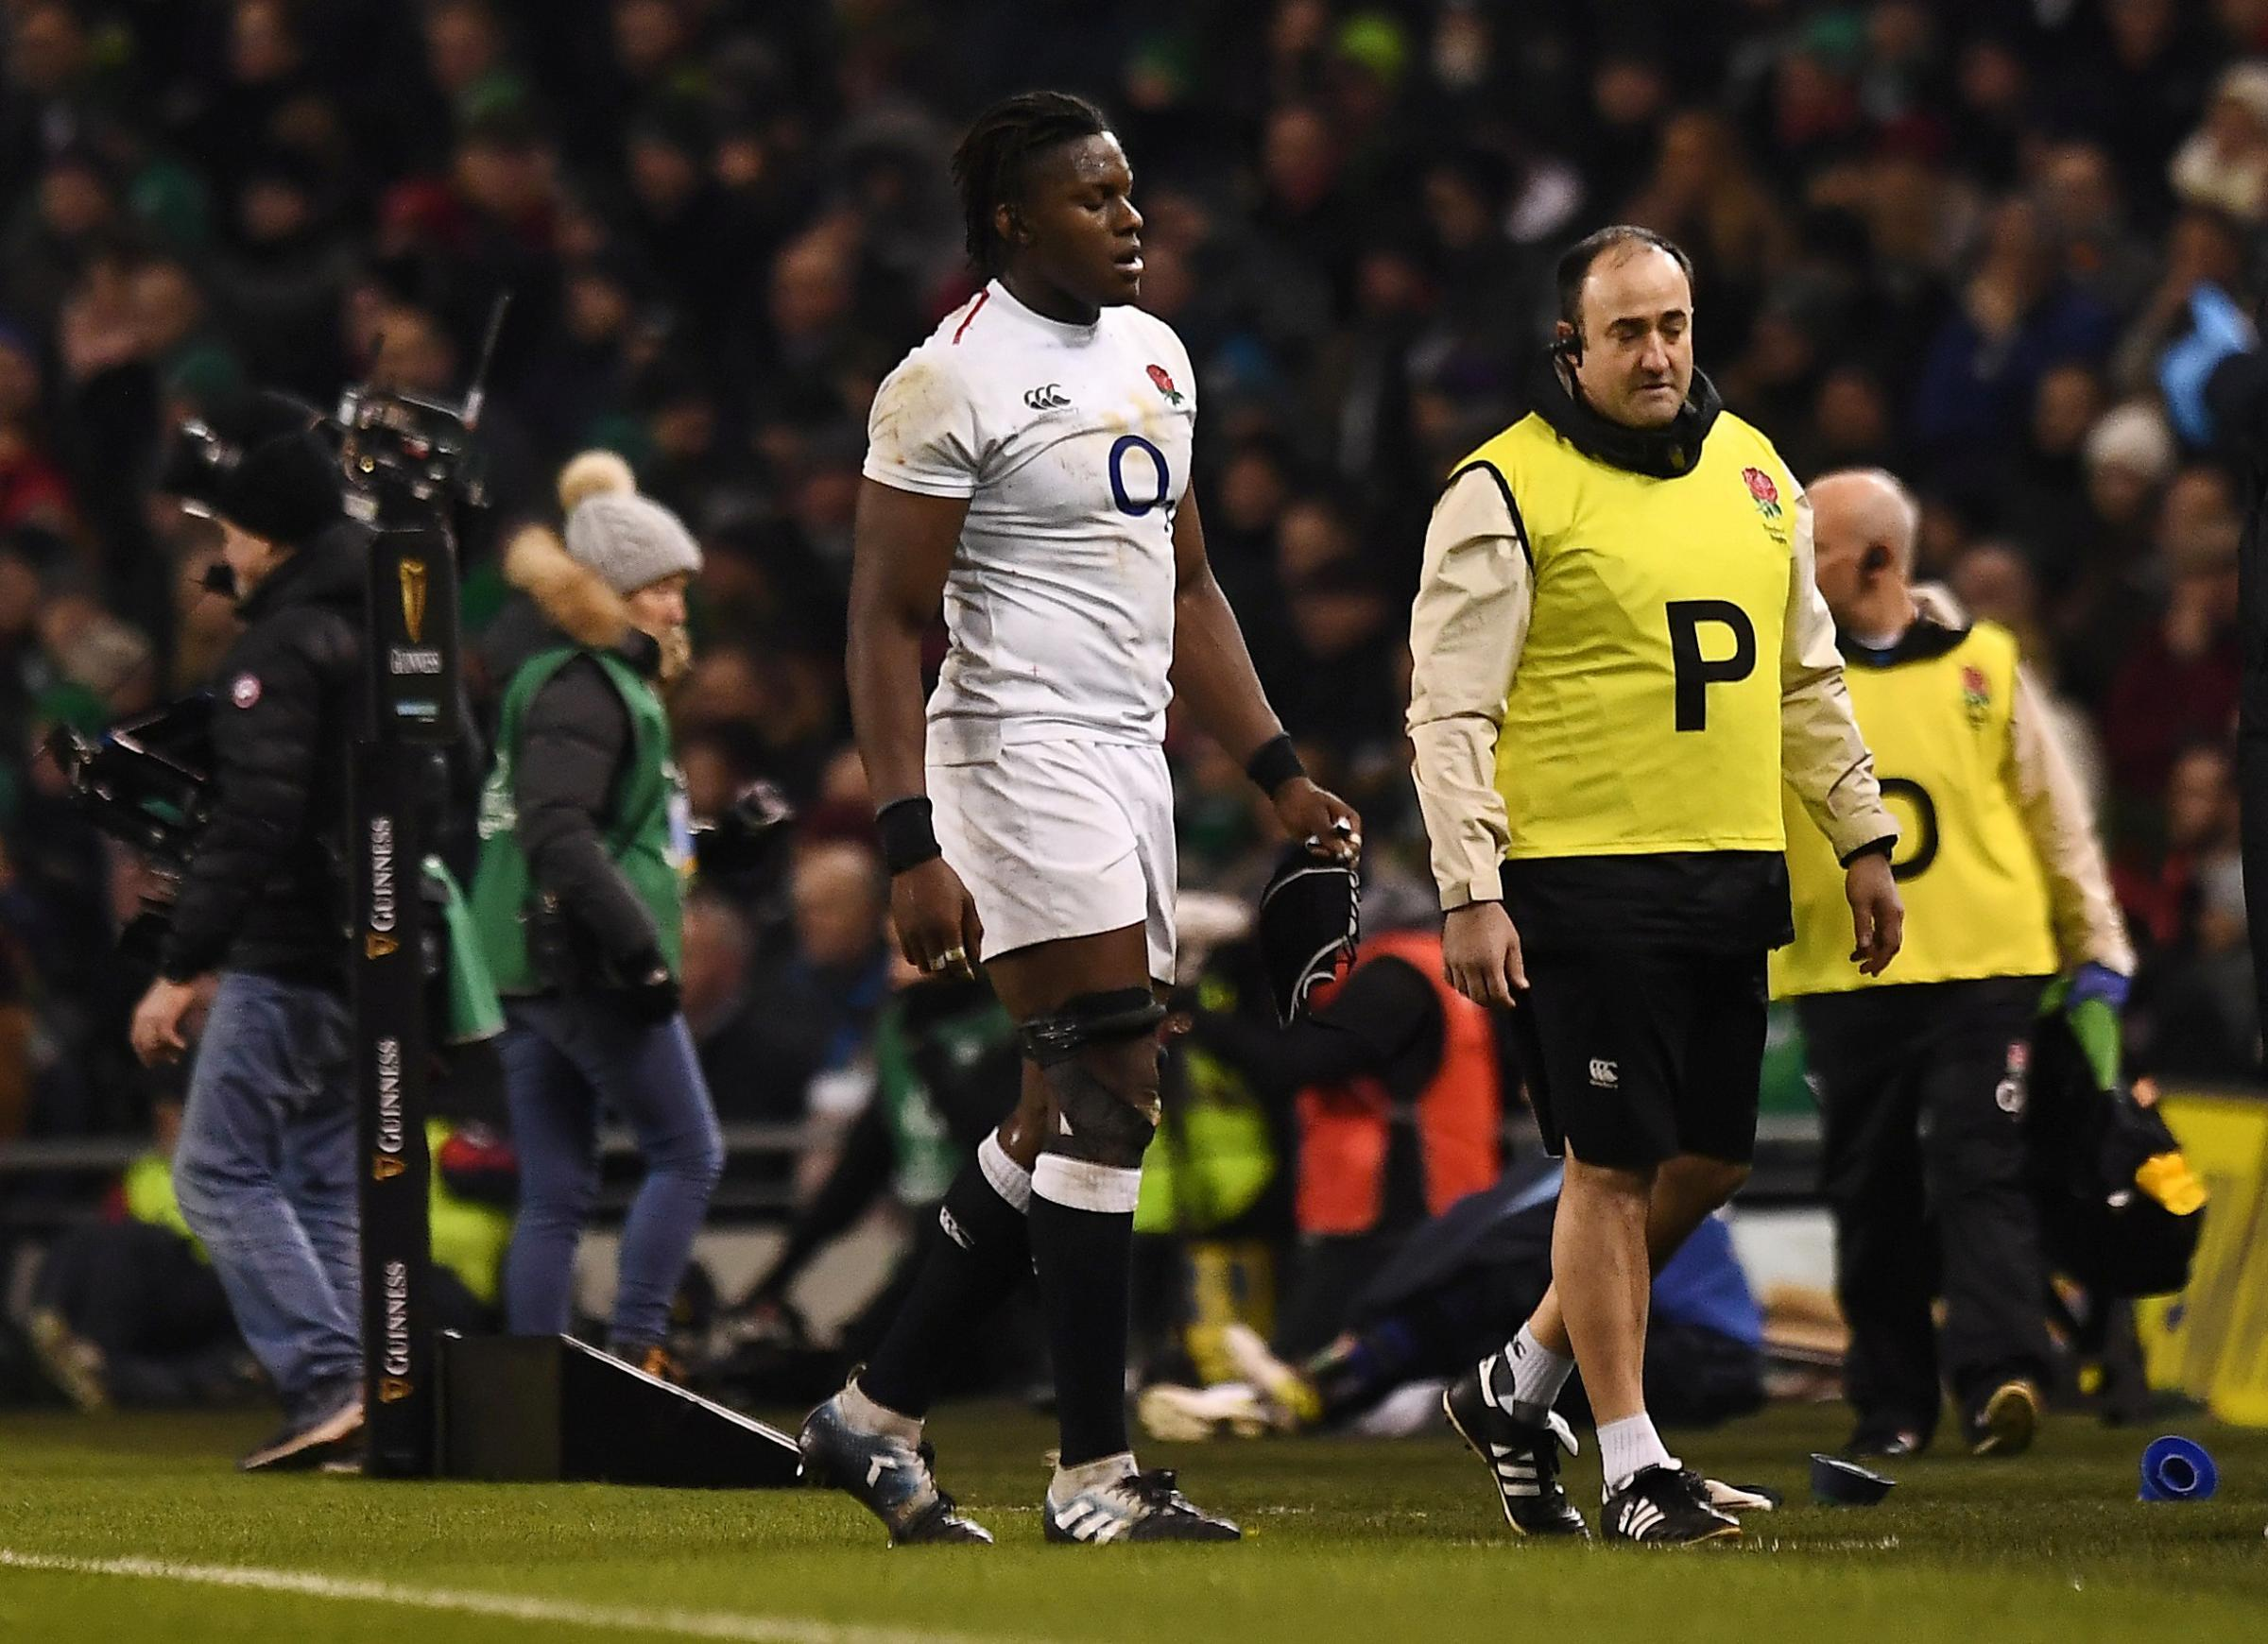 A dejected Maro Itoje leaves the pitch after sustaining his injury on Saturday.